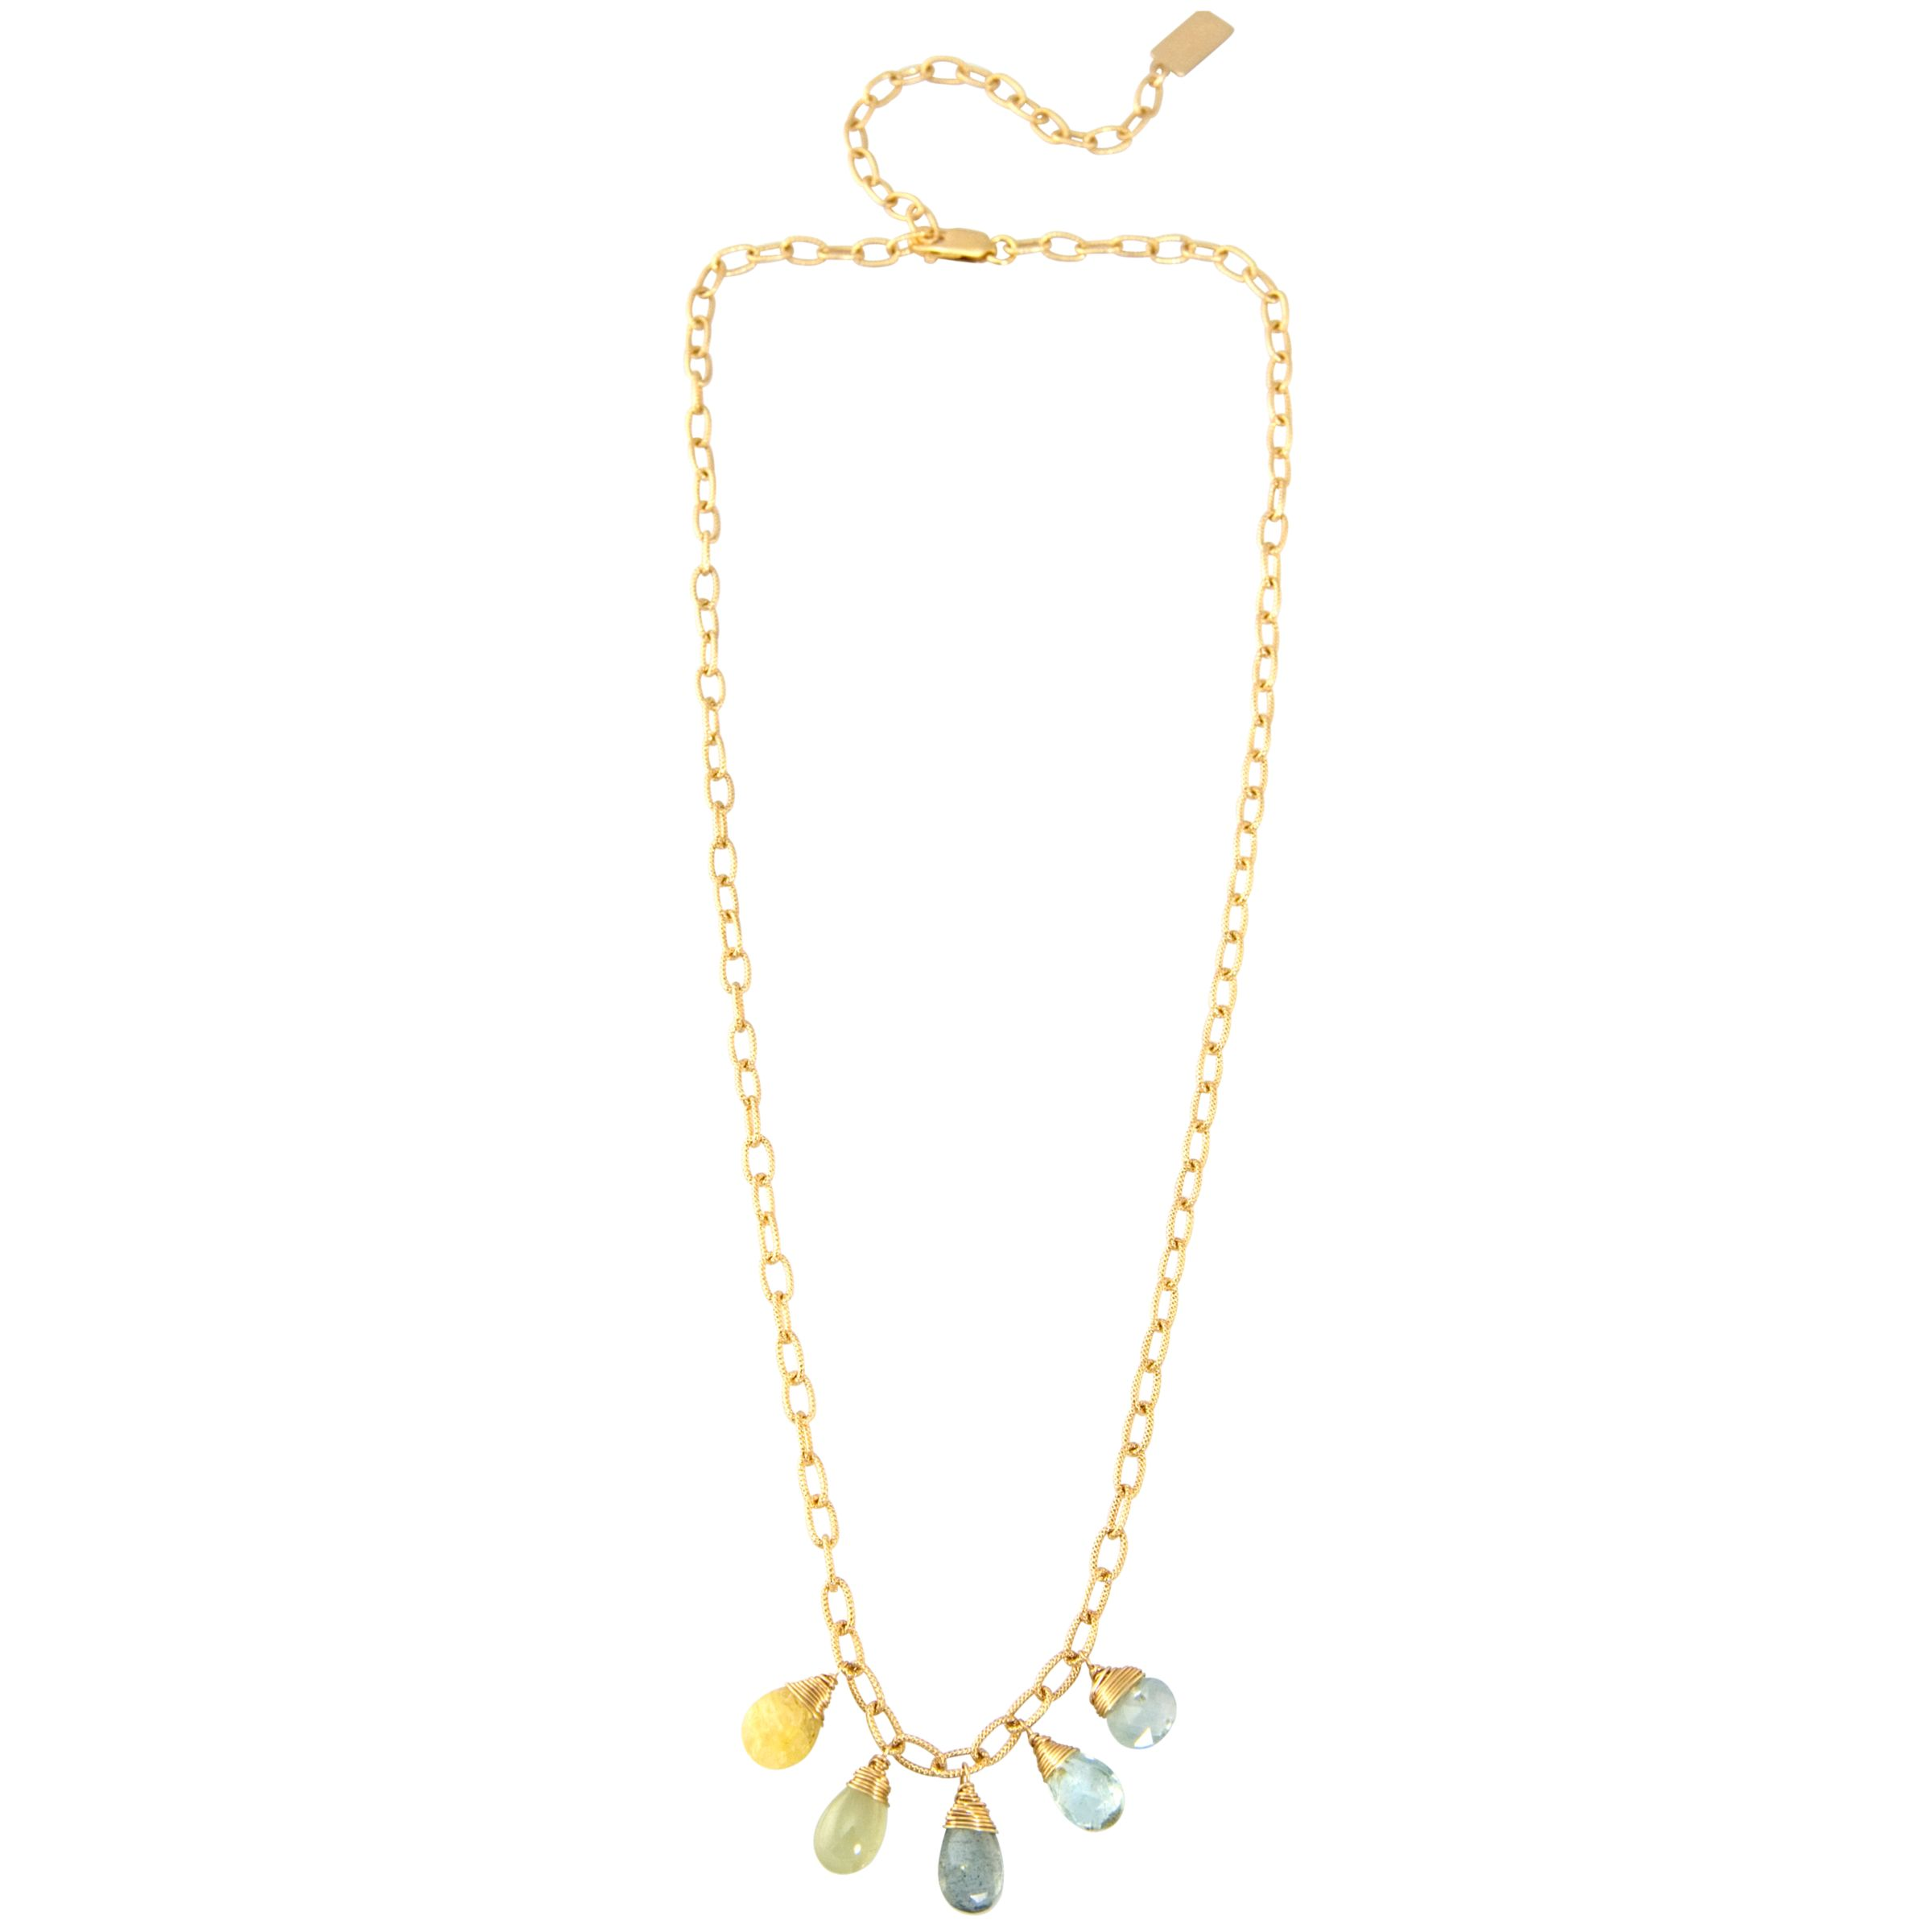 RueBelle 5 Drop Gold Filled Pendant Necklace